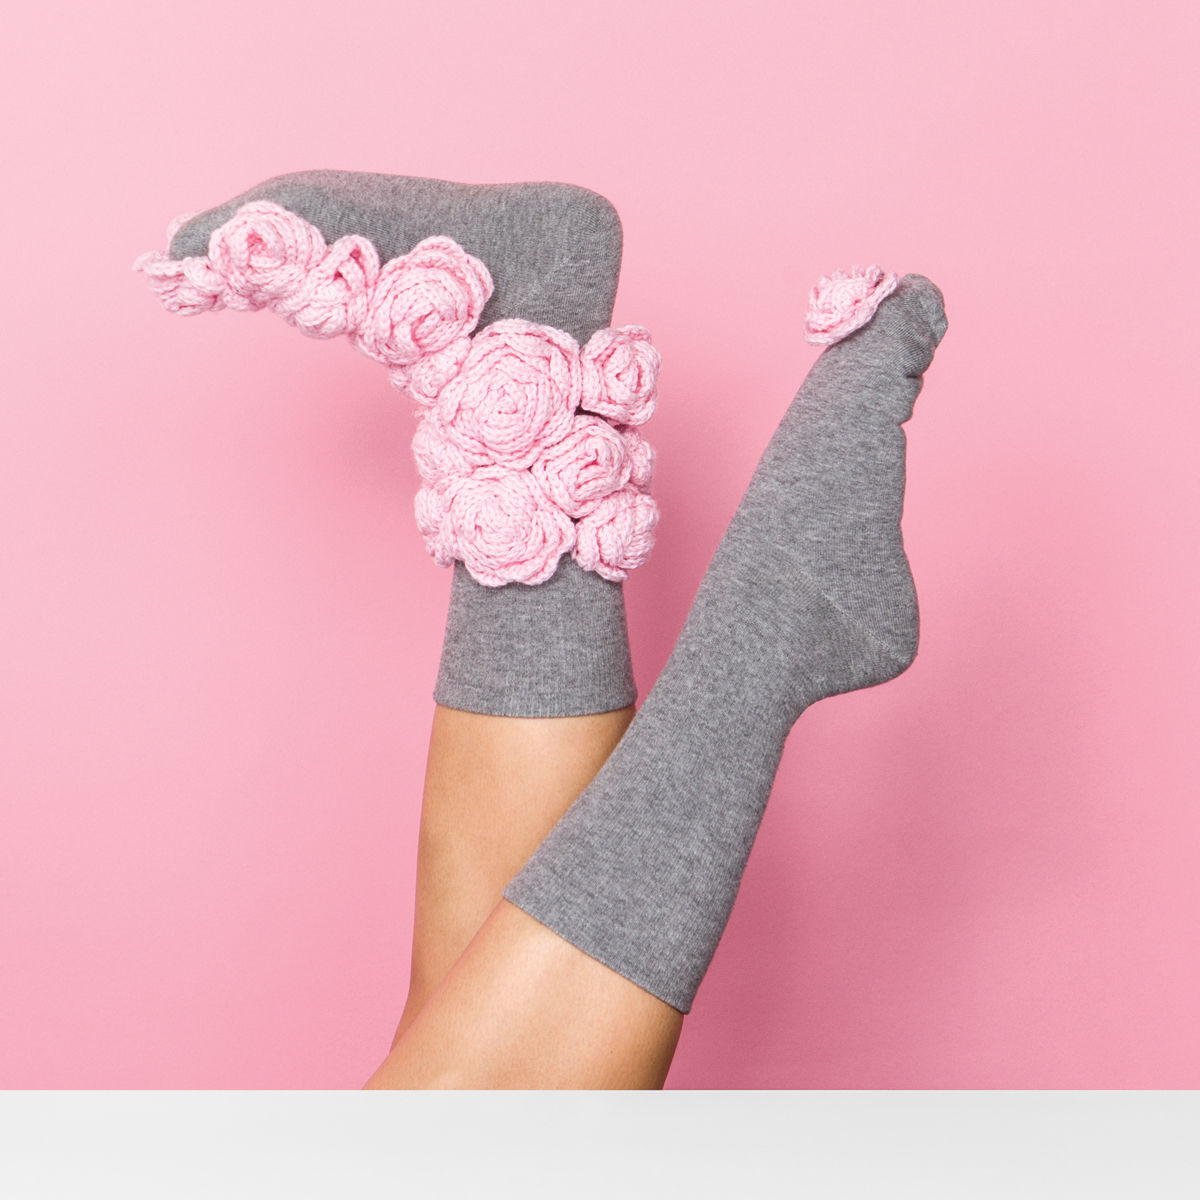 FrankieMag must-have socks blush roses http://weirdatheart.com/absolutely-must-have-socks/